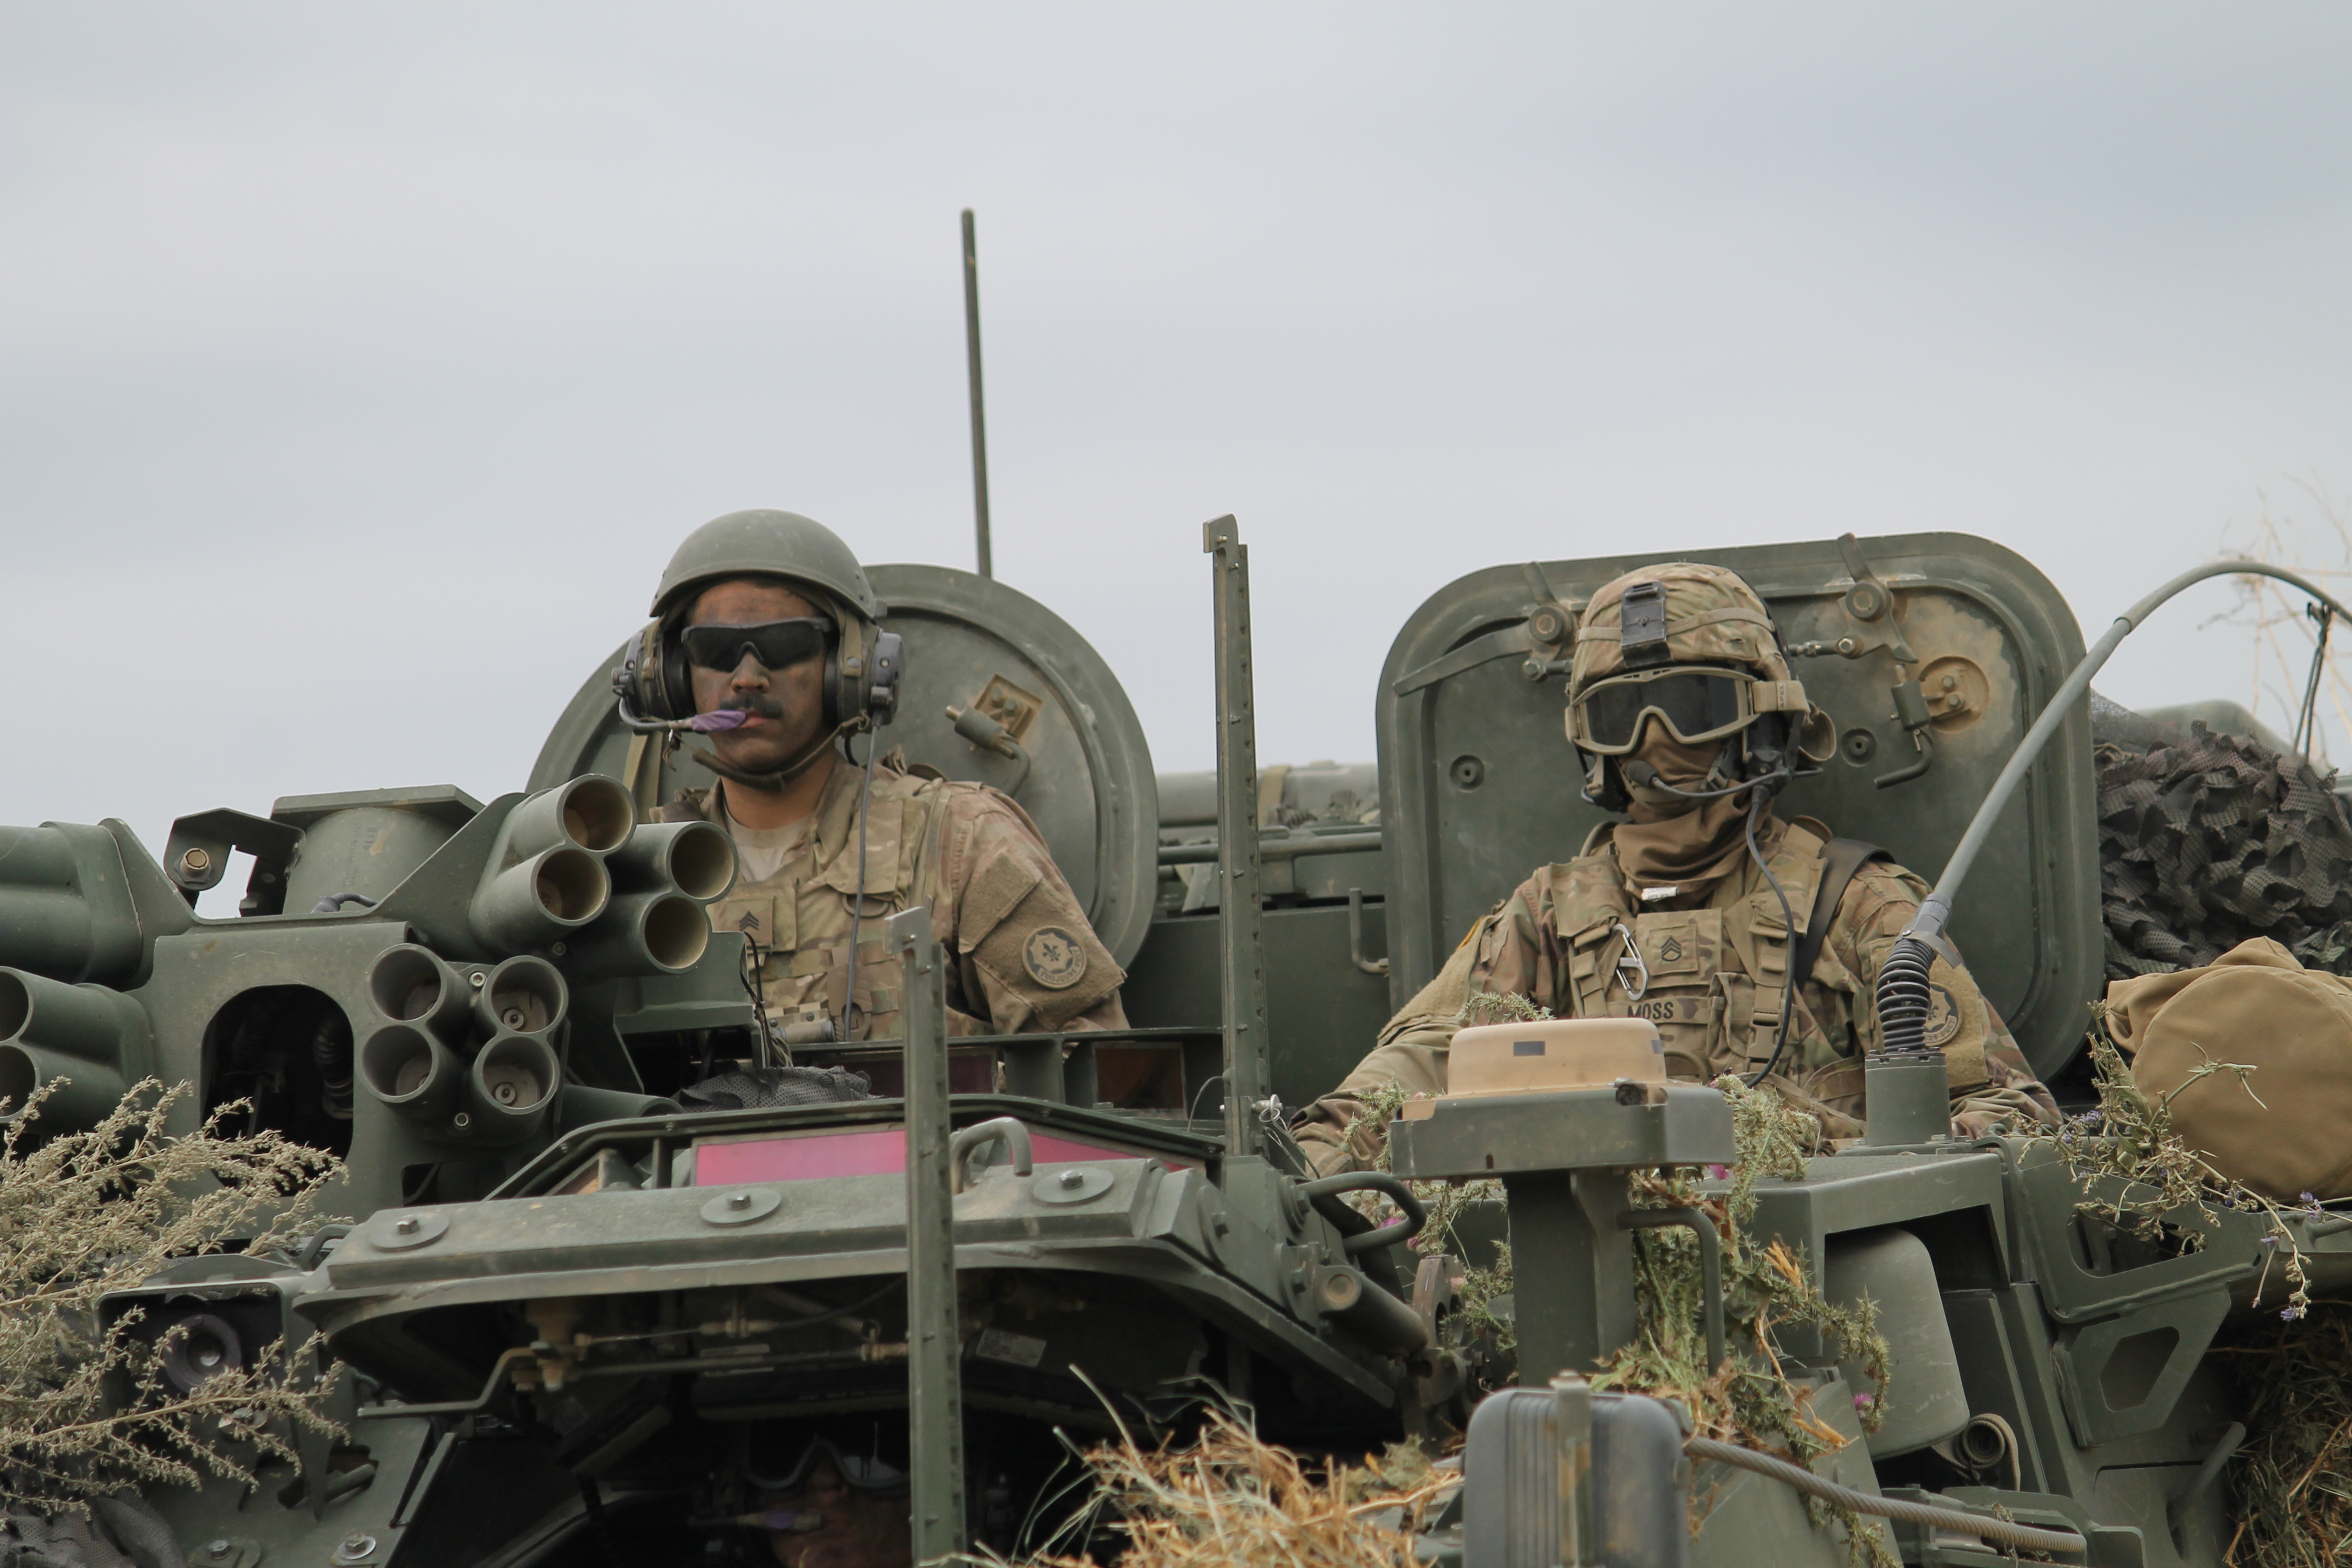 U.S. Stryker operators prepare to drive the vehicle onto the pontoon bridge after Romanian forces have used a variety of capabilities within a multidomain battle scenario to secure the area for the crossing. (Jen Judson/Staff)